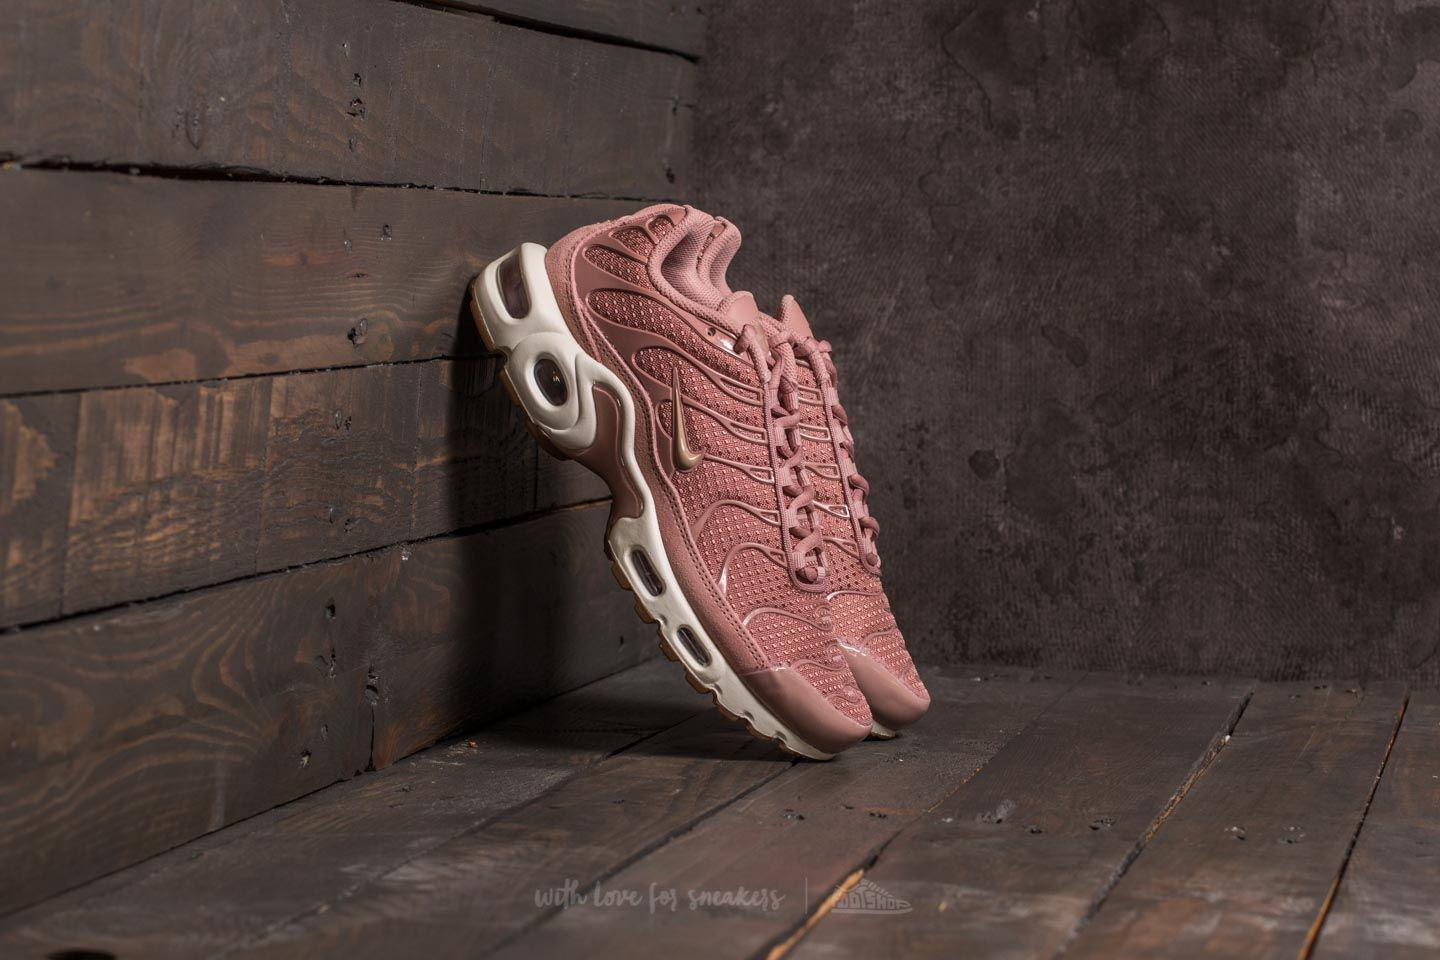 ce2ccd933e Nike Wmns Air Max Plus Particle Pink/ Mushroom-sail in Pink - Lyst